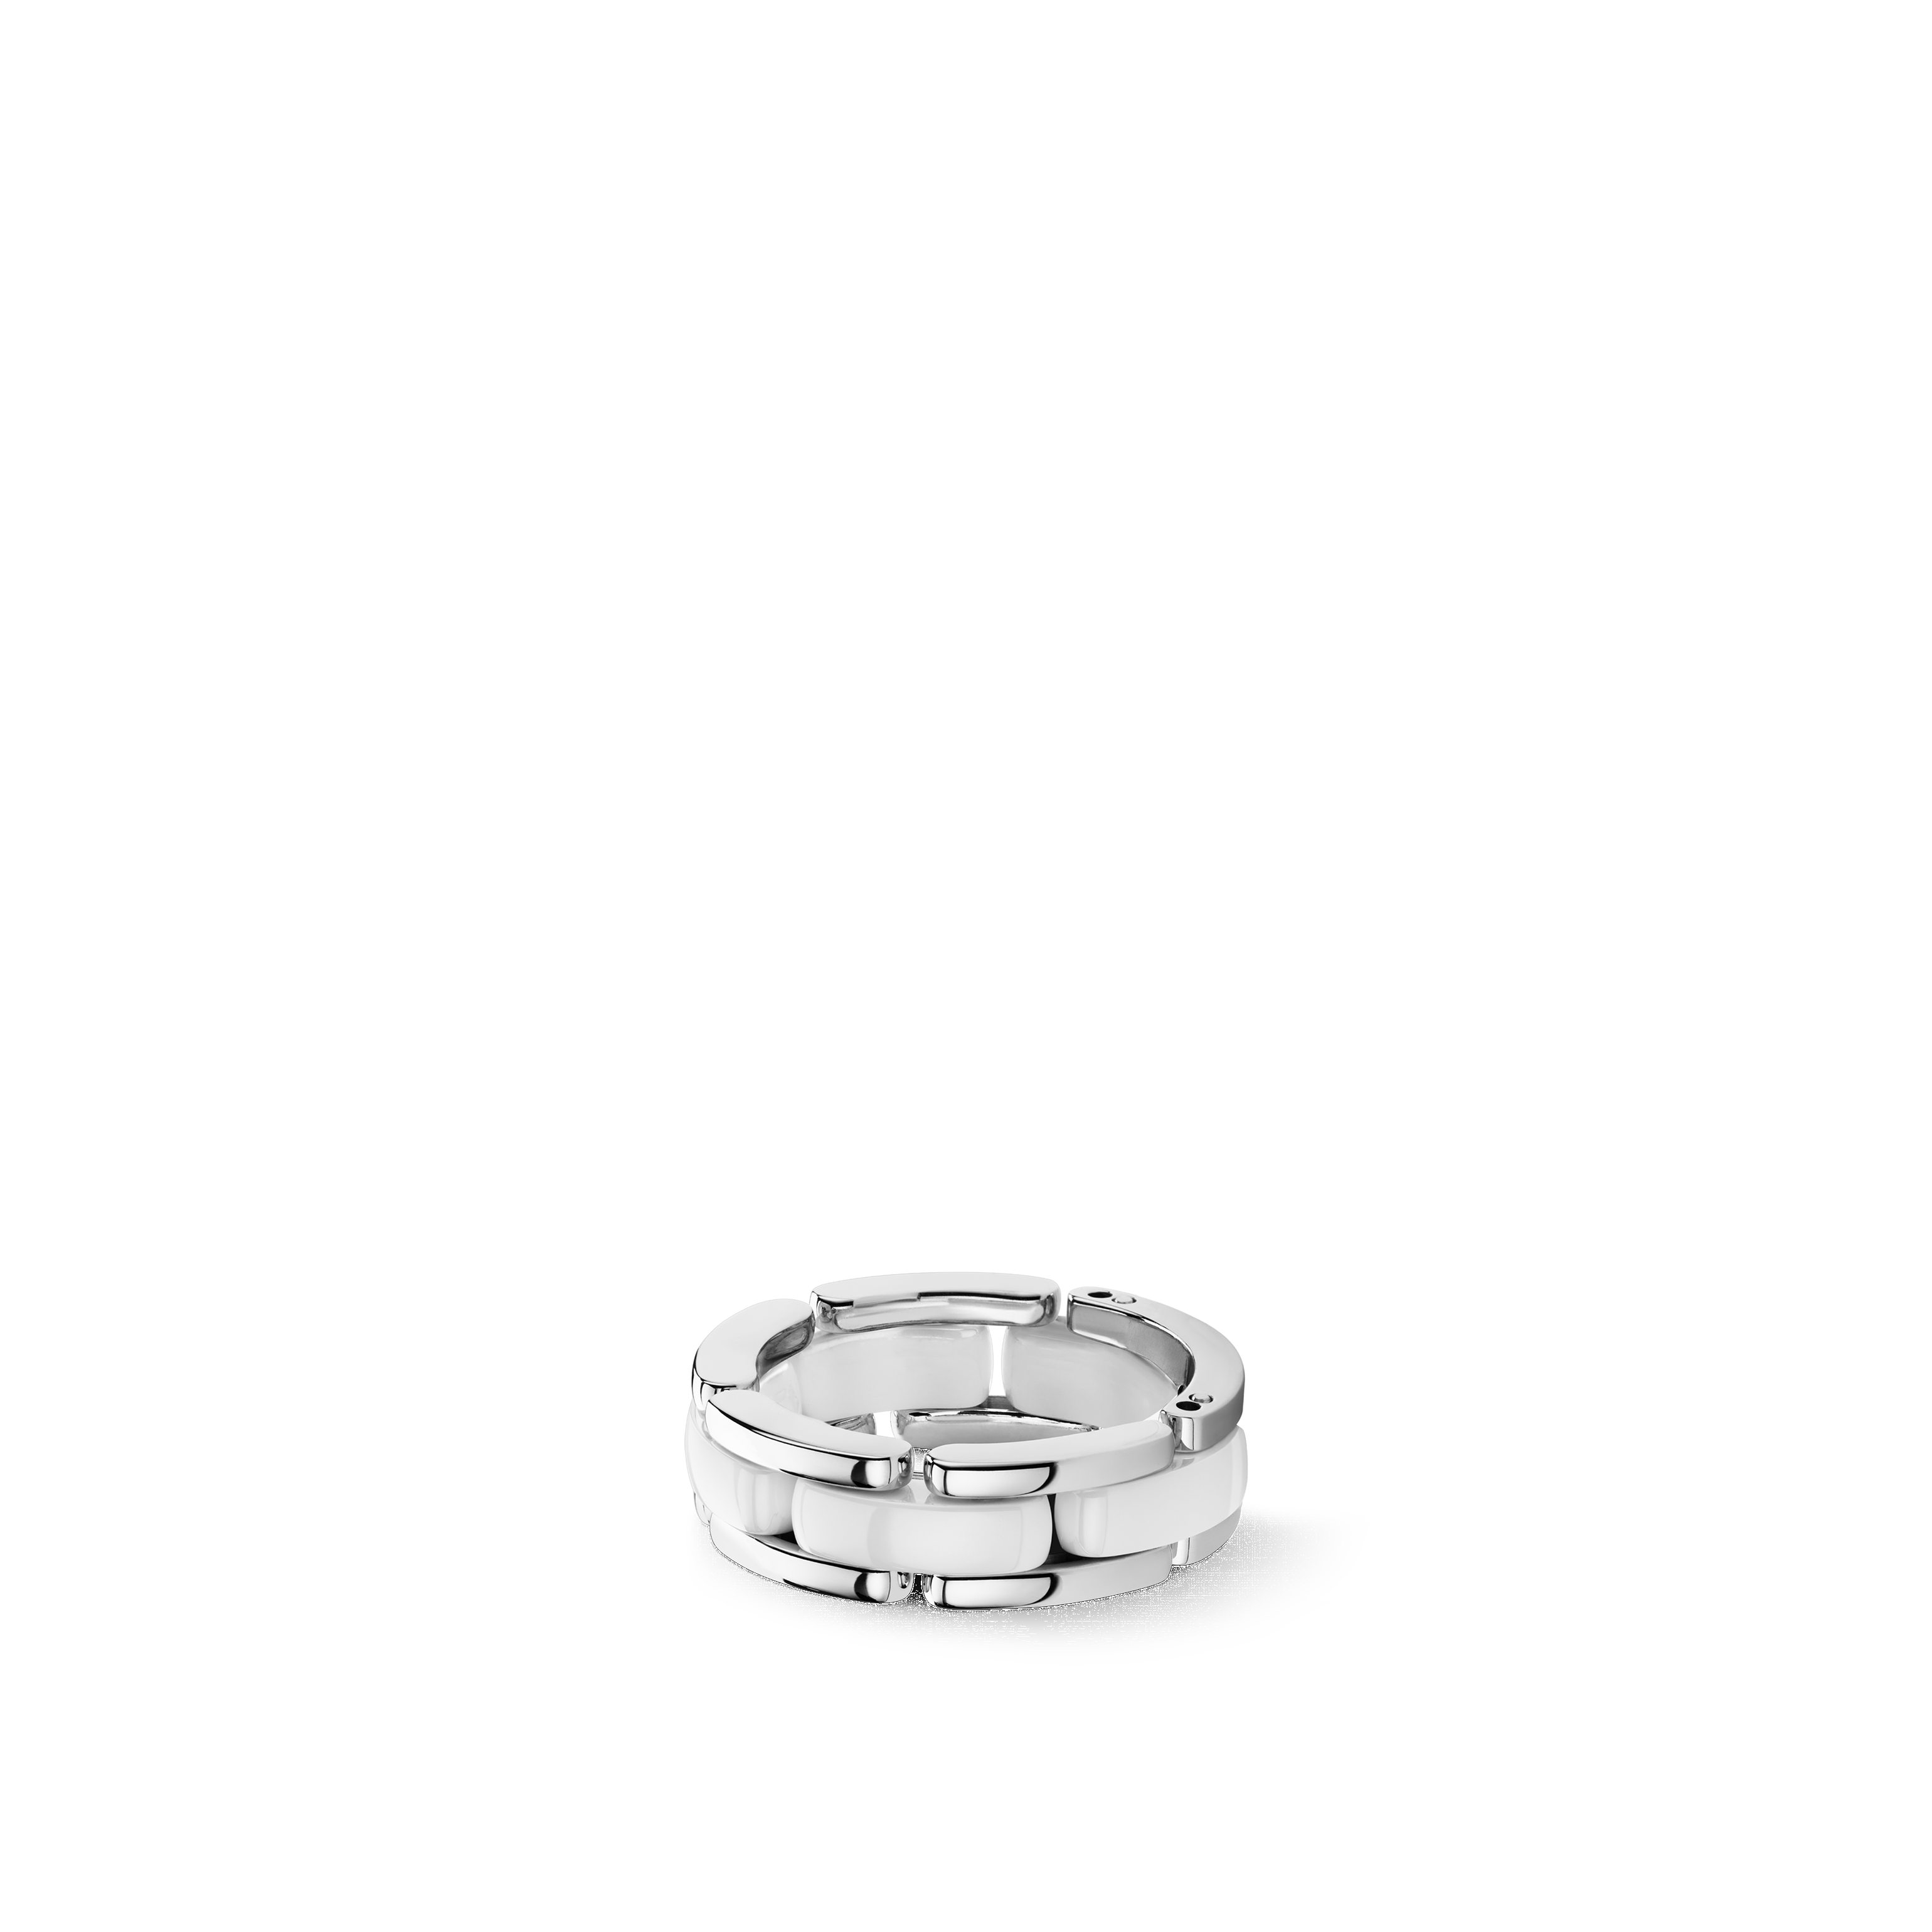 Ultra ring - Medium version, 18K white gold, white ceramic - CHANEL - Default view - see standard sized version